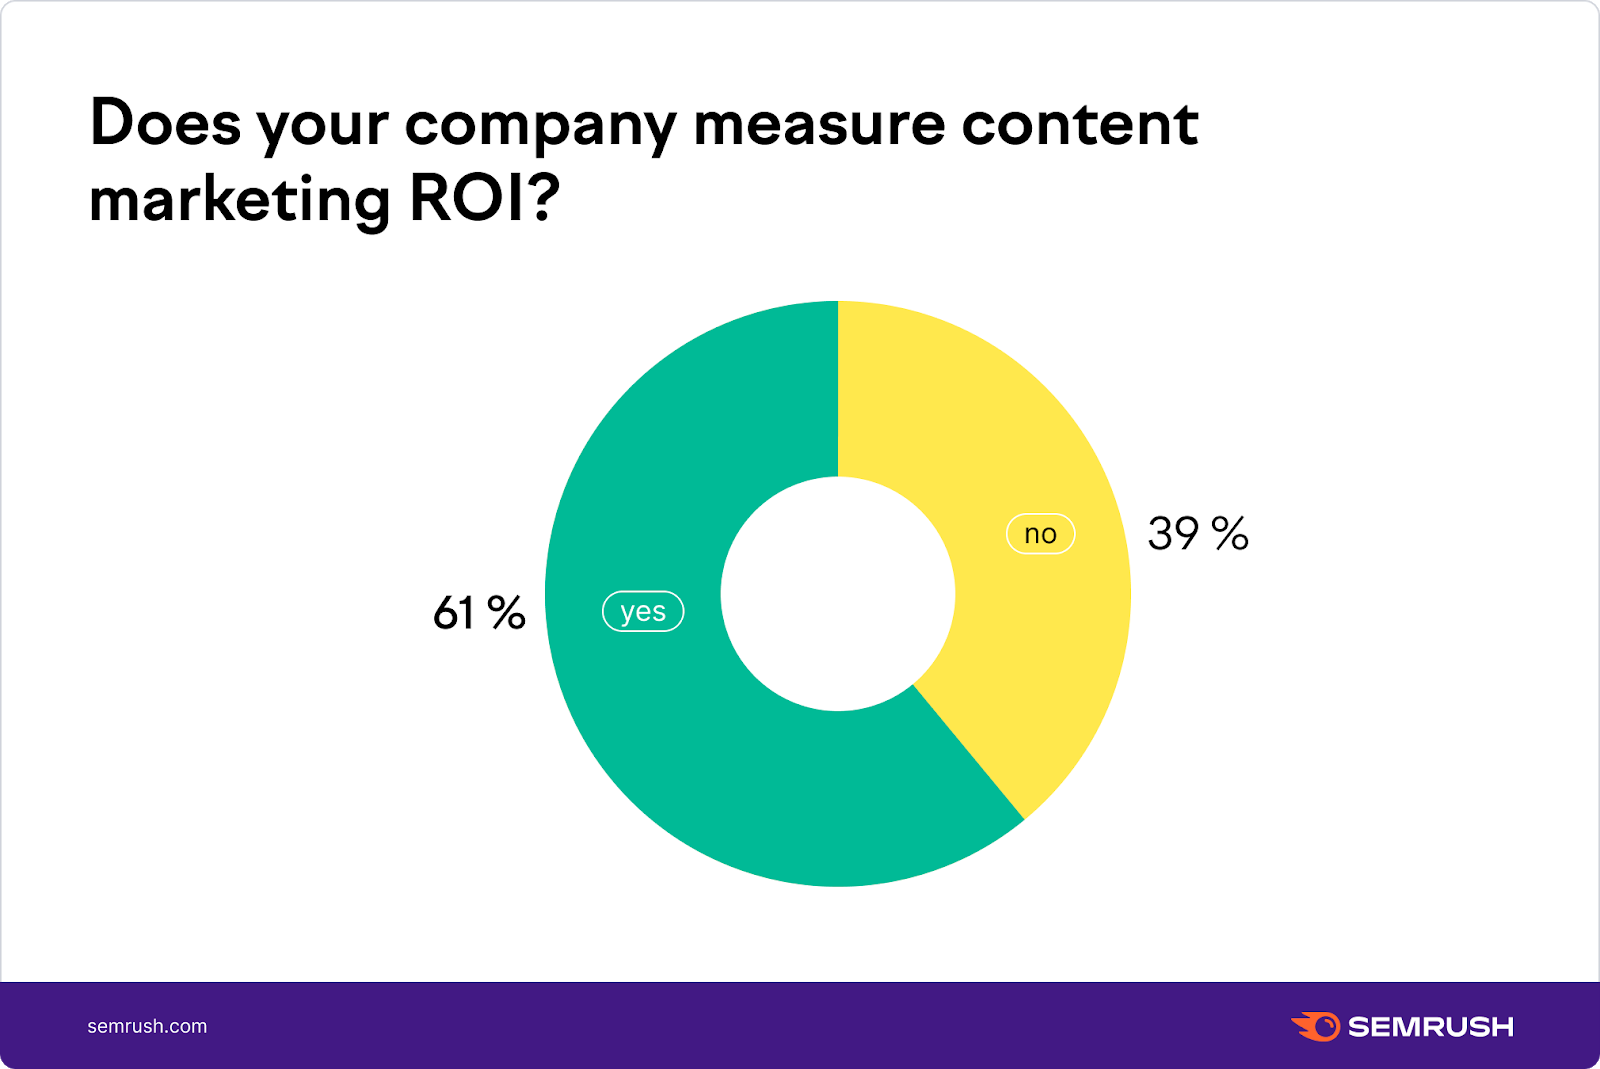 Does your company measure content marketing ROI?